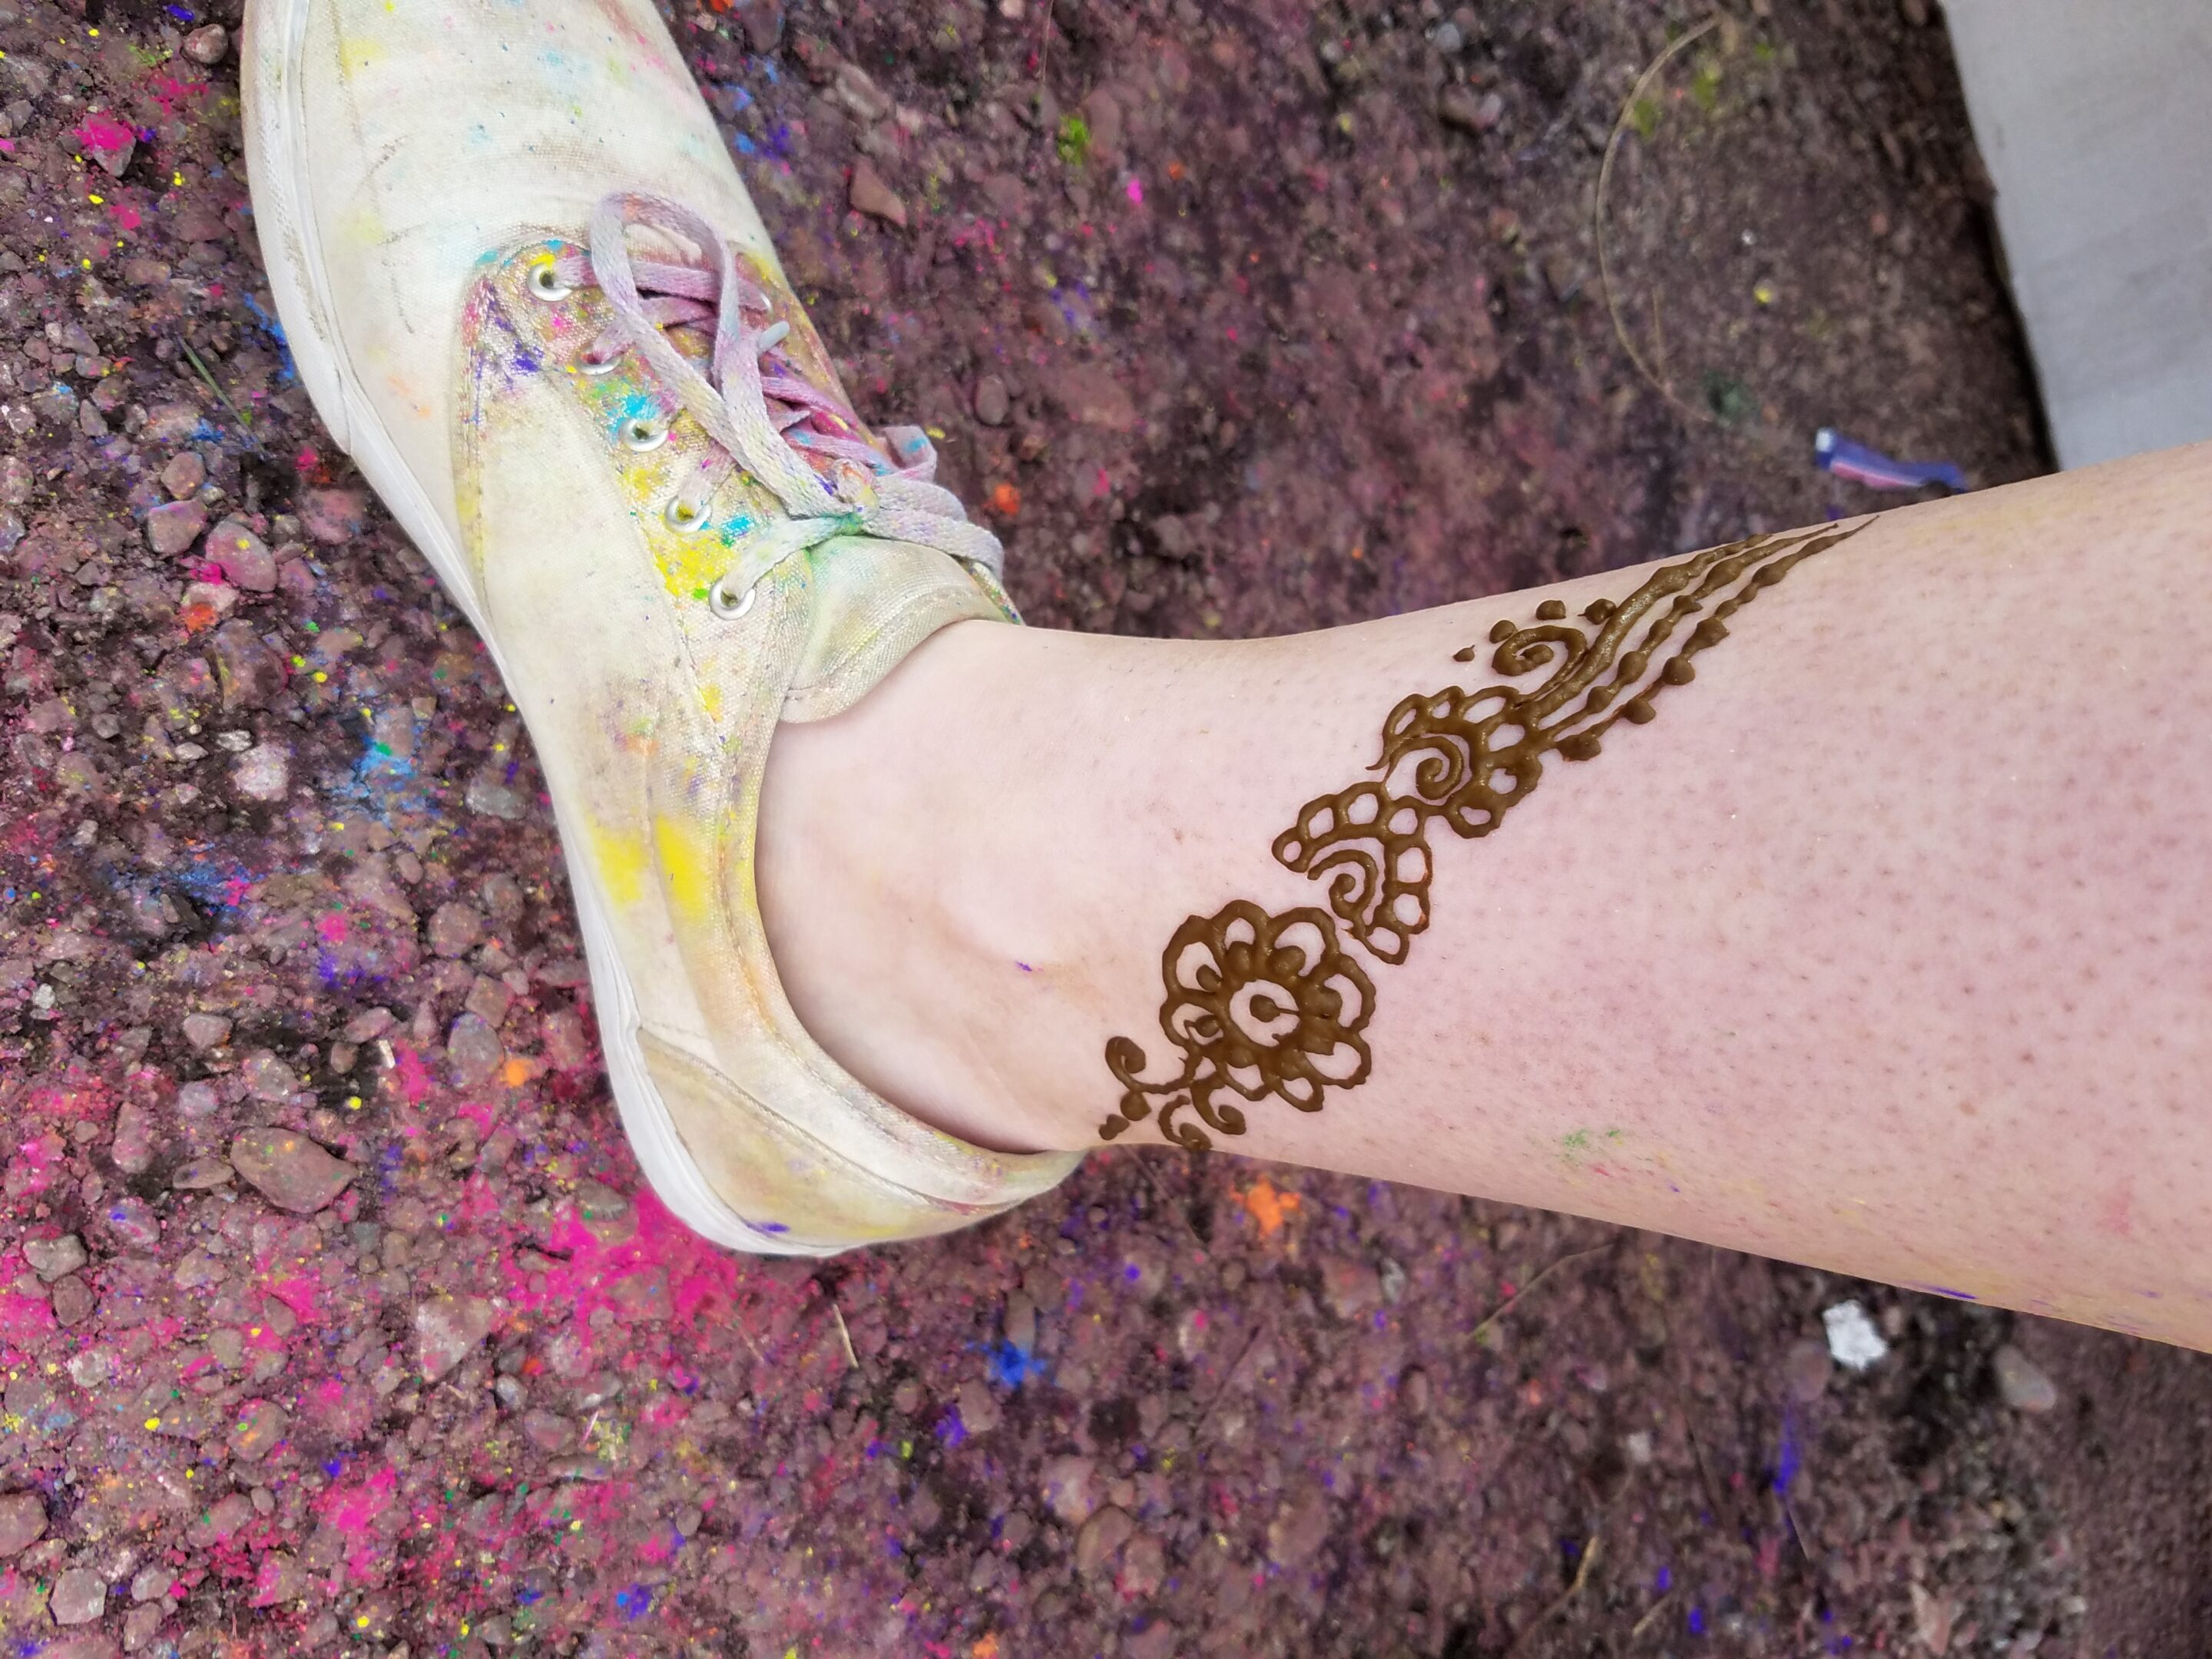 Henna 2 at the Festival of Colors